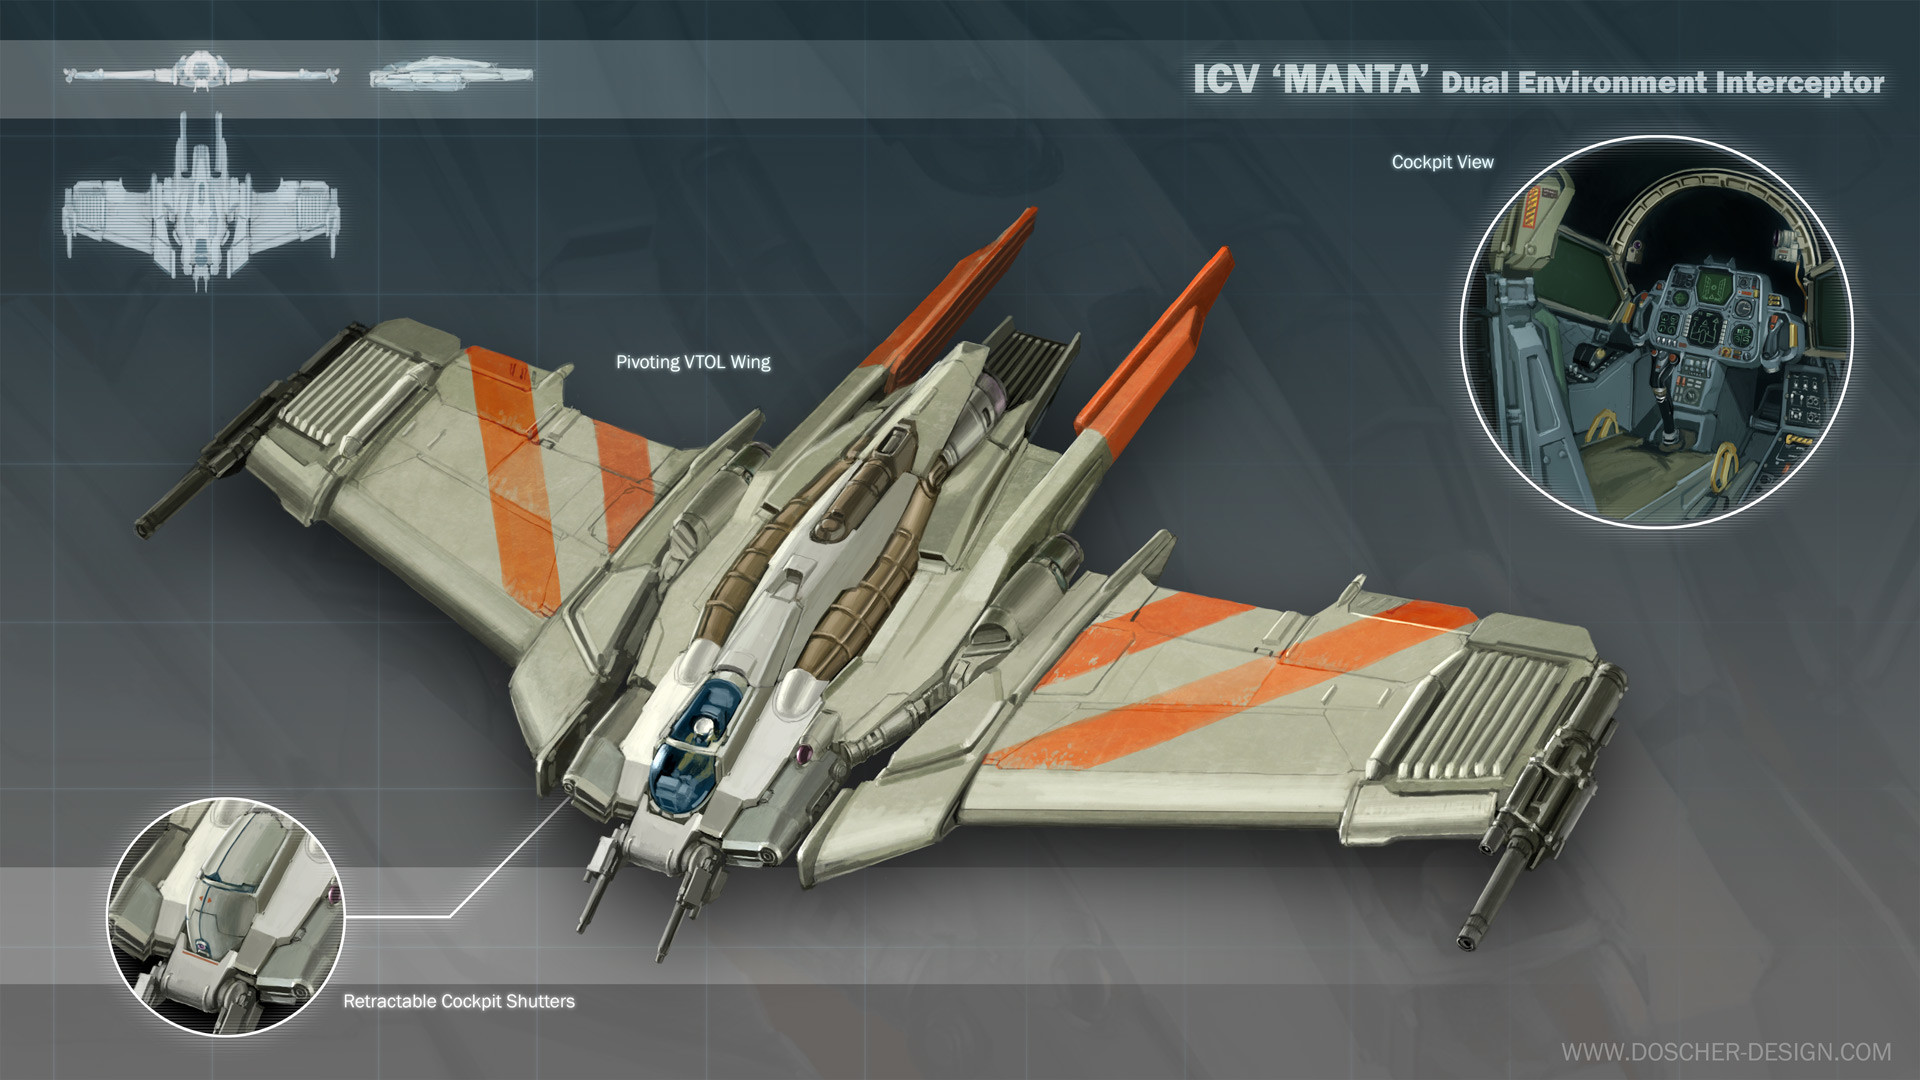 Mike doscher icv manta interceptor by mikedoscher d9tizhe